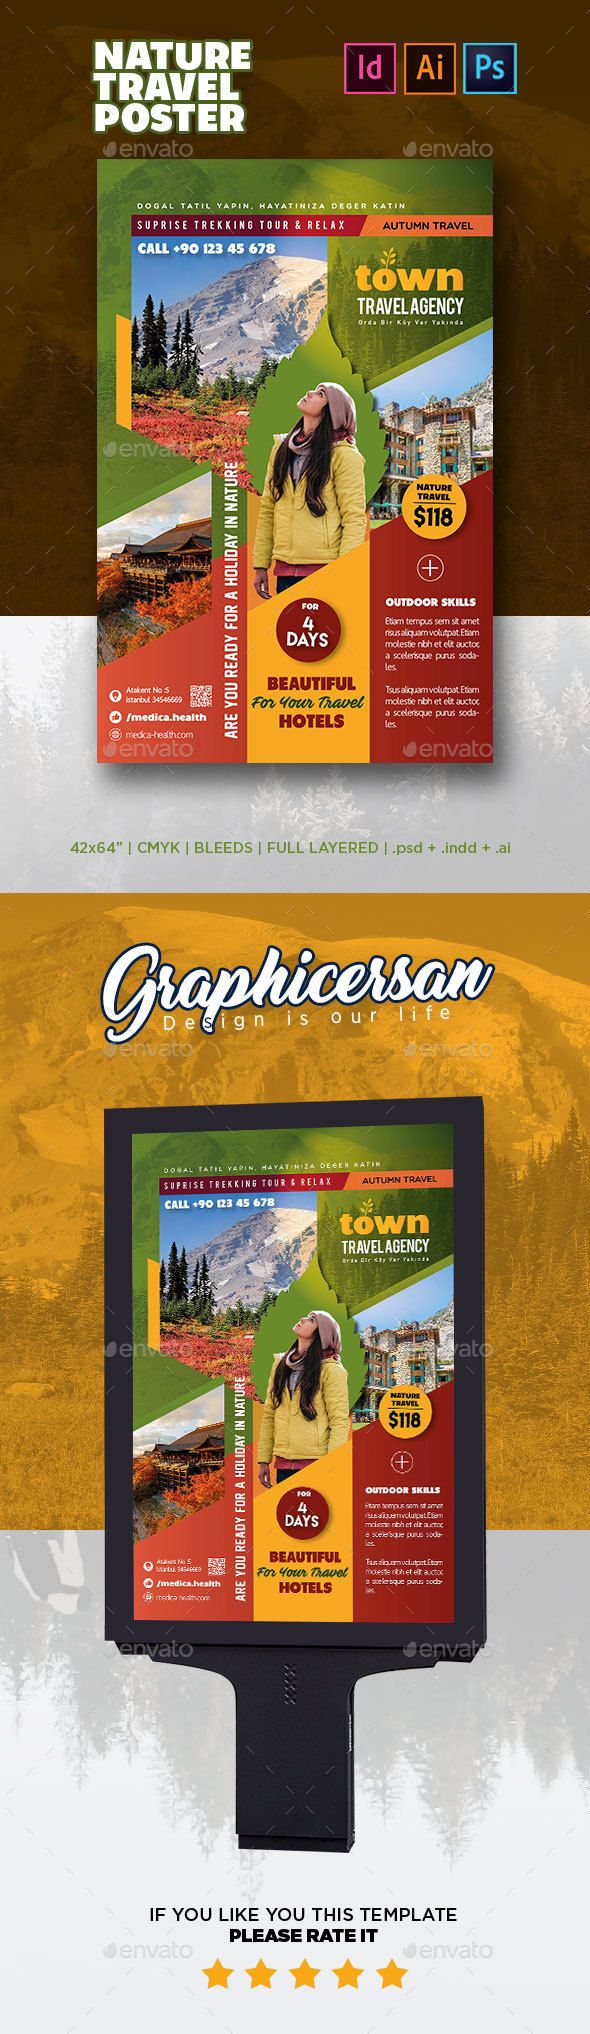 Nature Travel Poster | Travel posters, Print templates and Signage